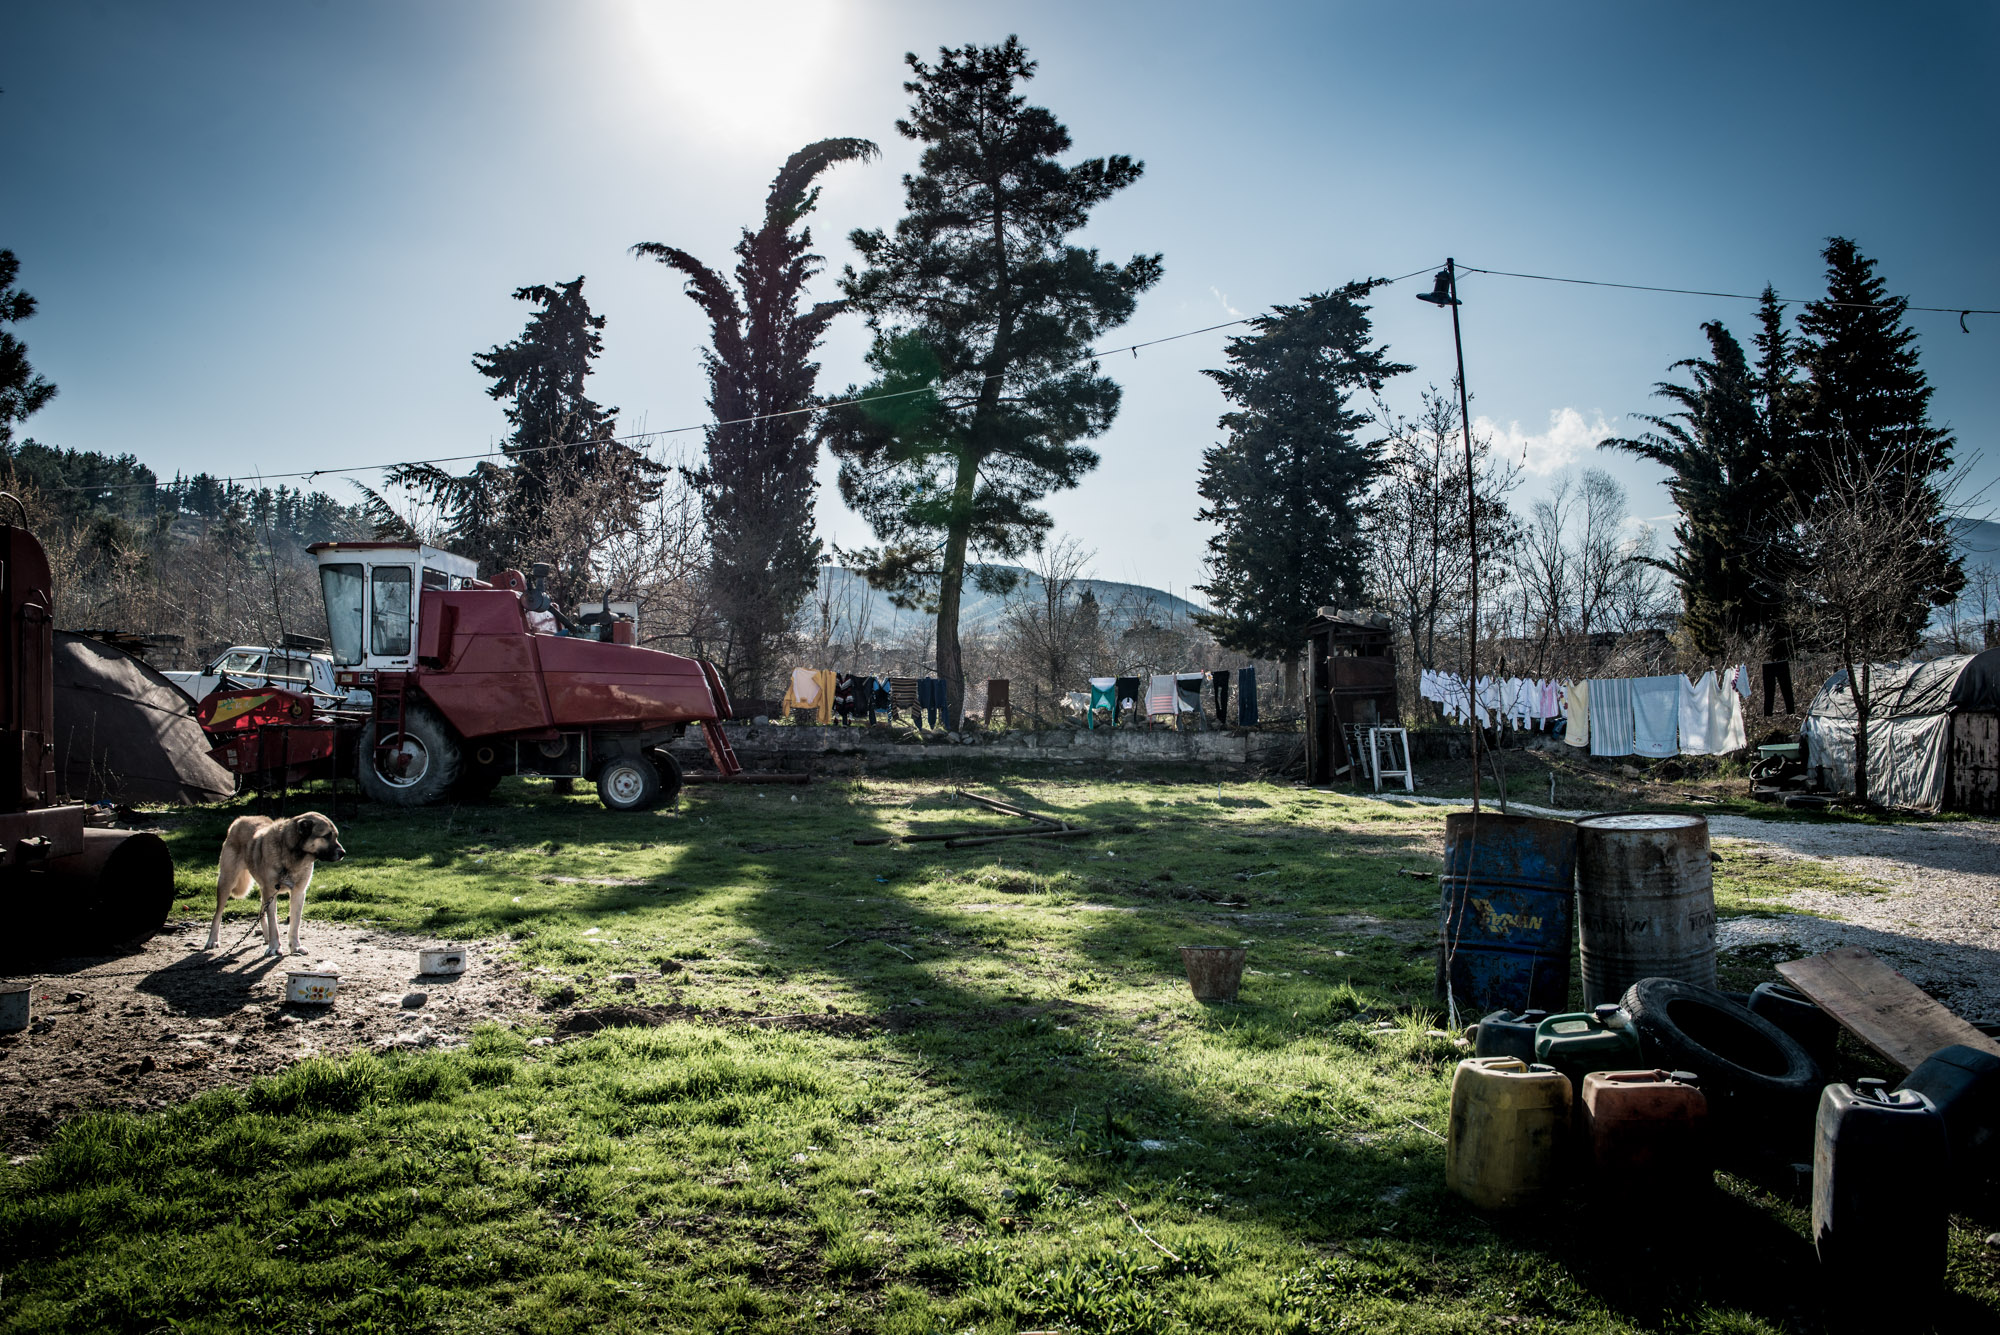 The backyard of a building that hosts Syrian Armenian families in Zangilan. The combine belongs to one of the families.